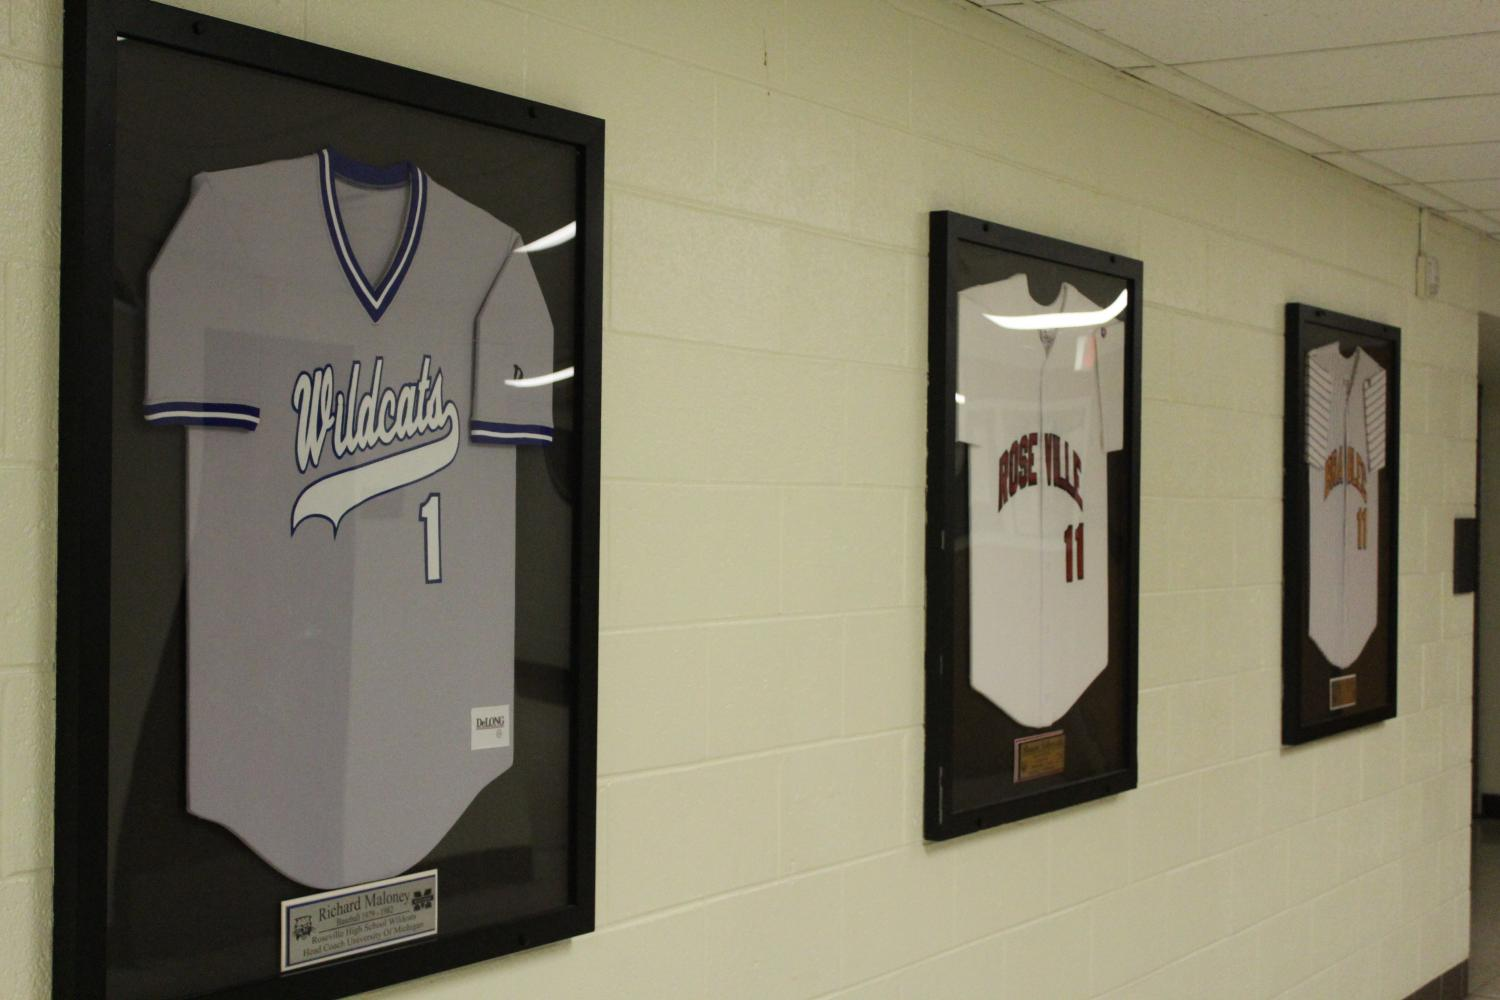 Roseville plans to add hall of fame